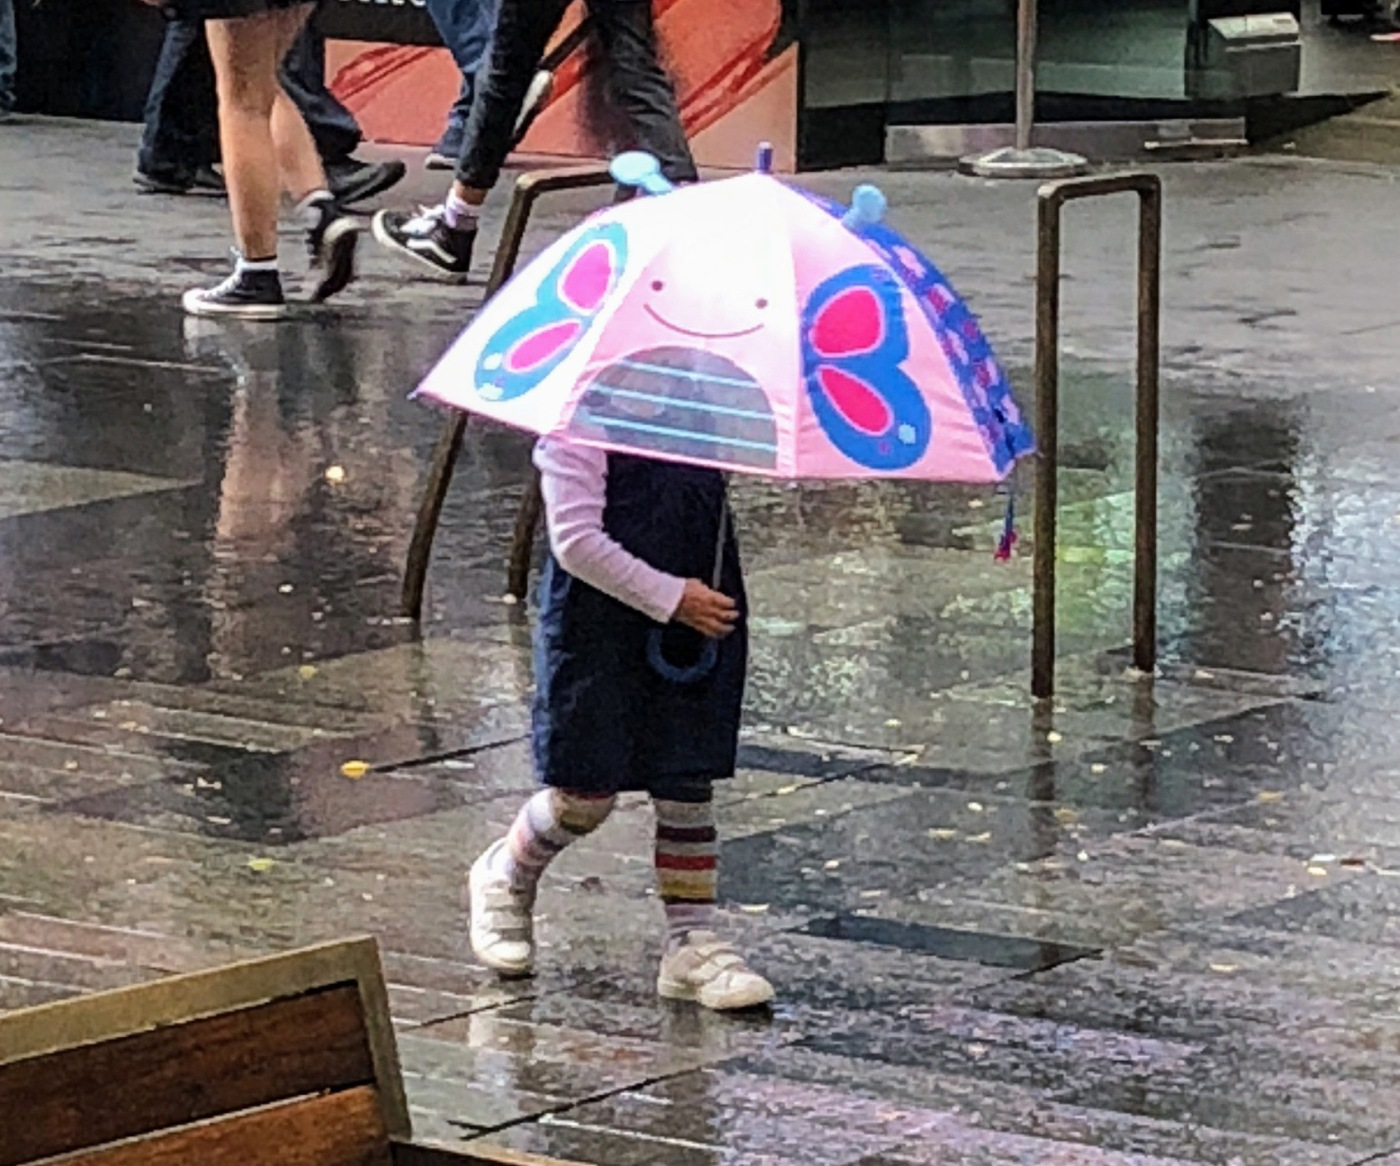 Girl walking in the rain with umbrella.